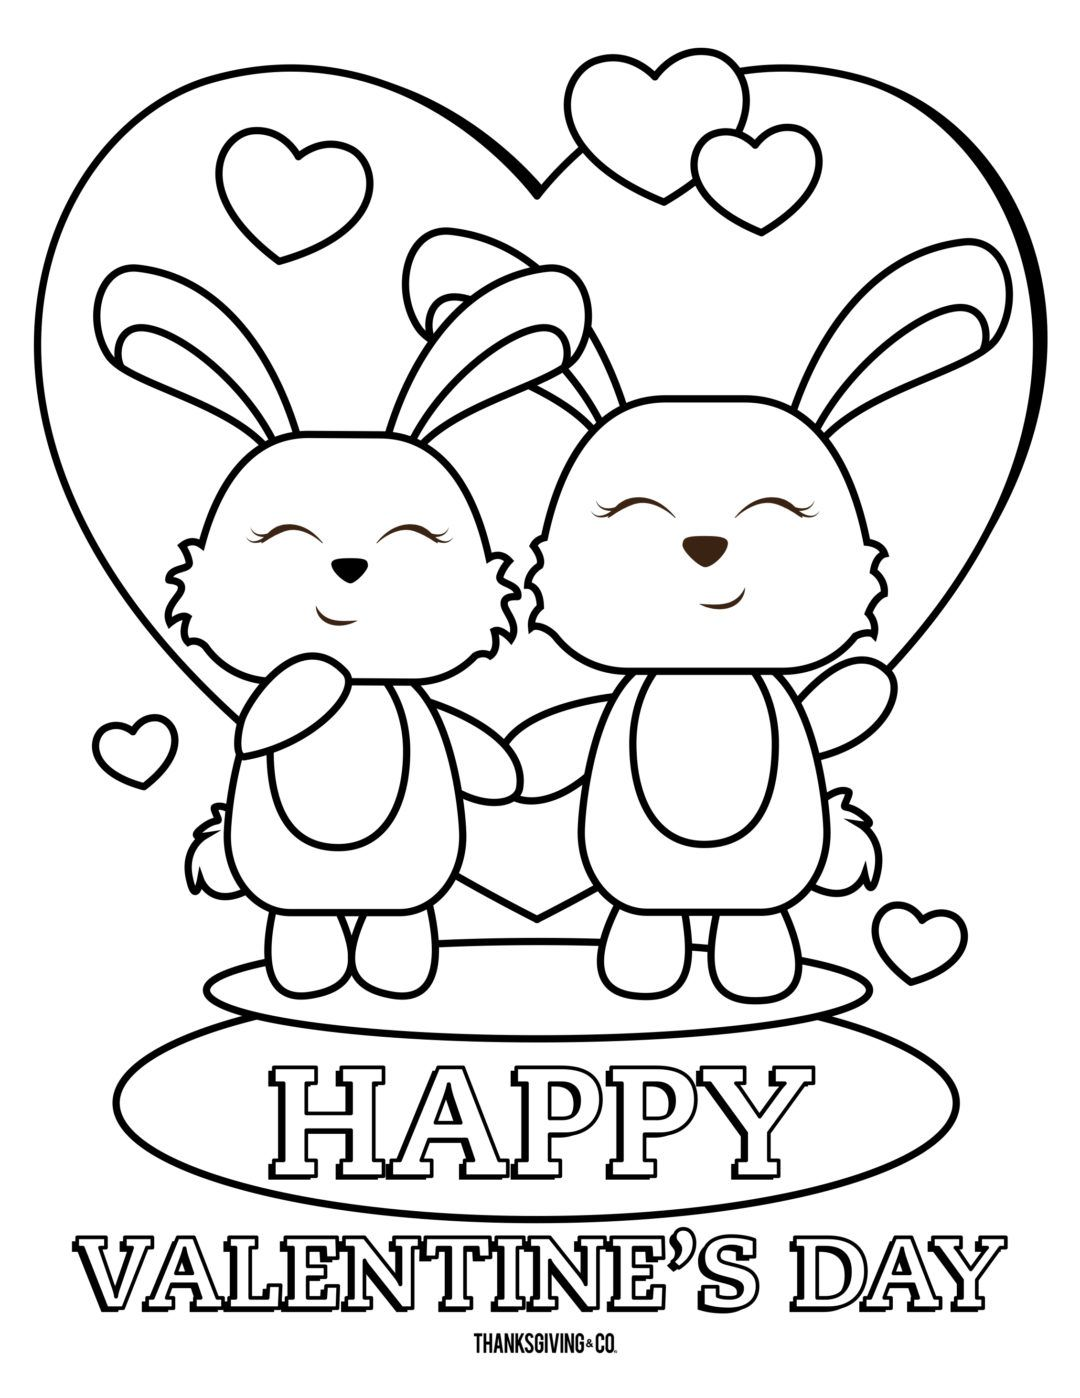 Valentineday Coloring 2 Bunny Coloring Pages Valentines Day Coloring Page Valentine Coloring Pages